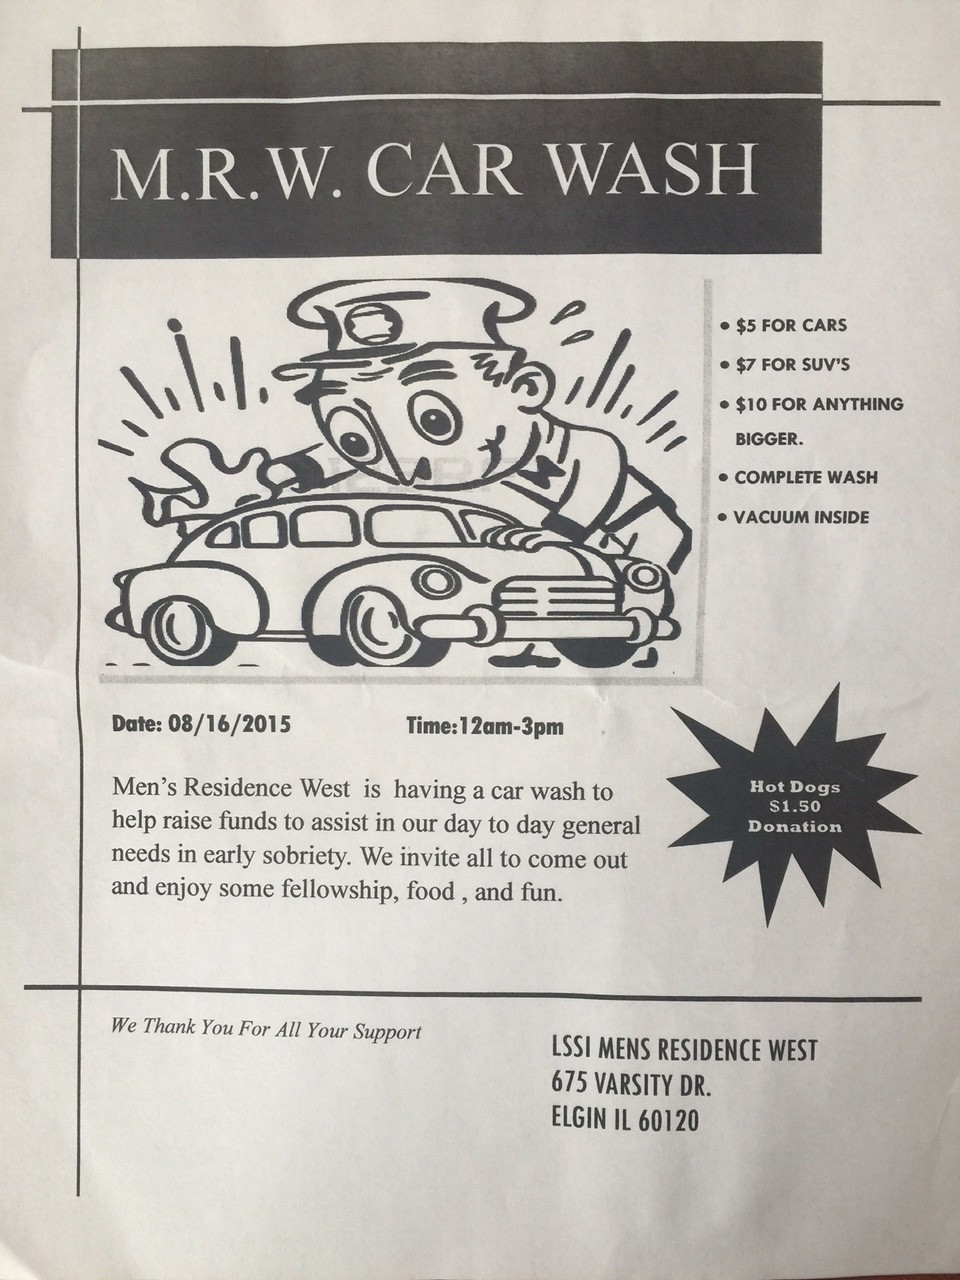 M.R.W. Car Wash - August 16th 1